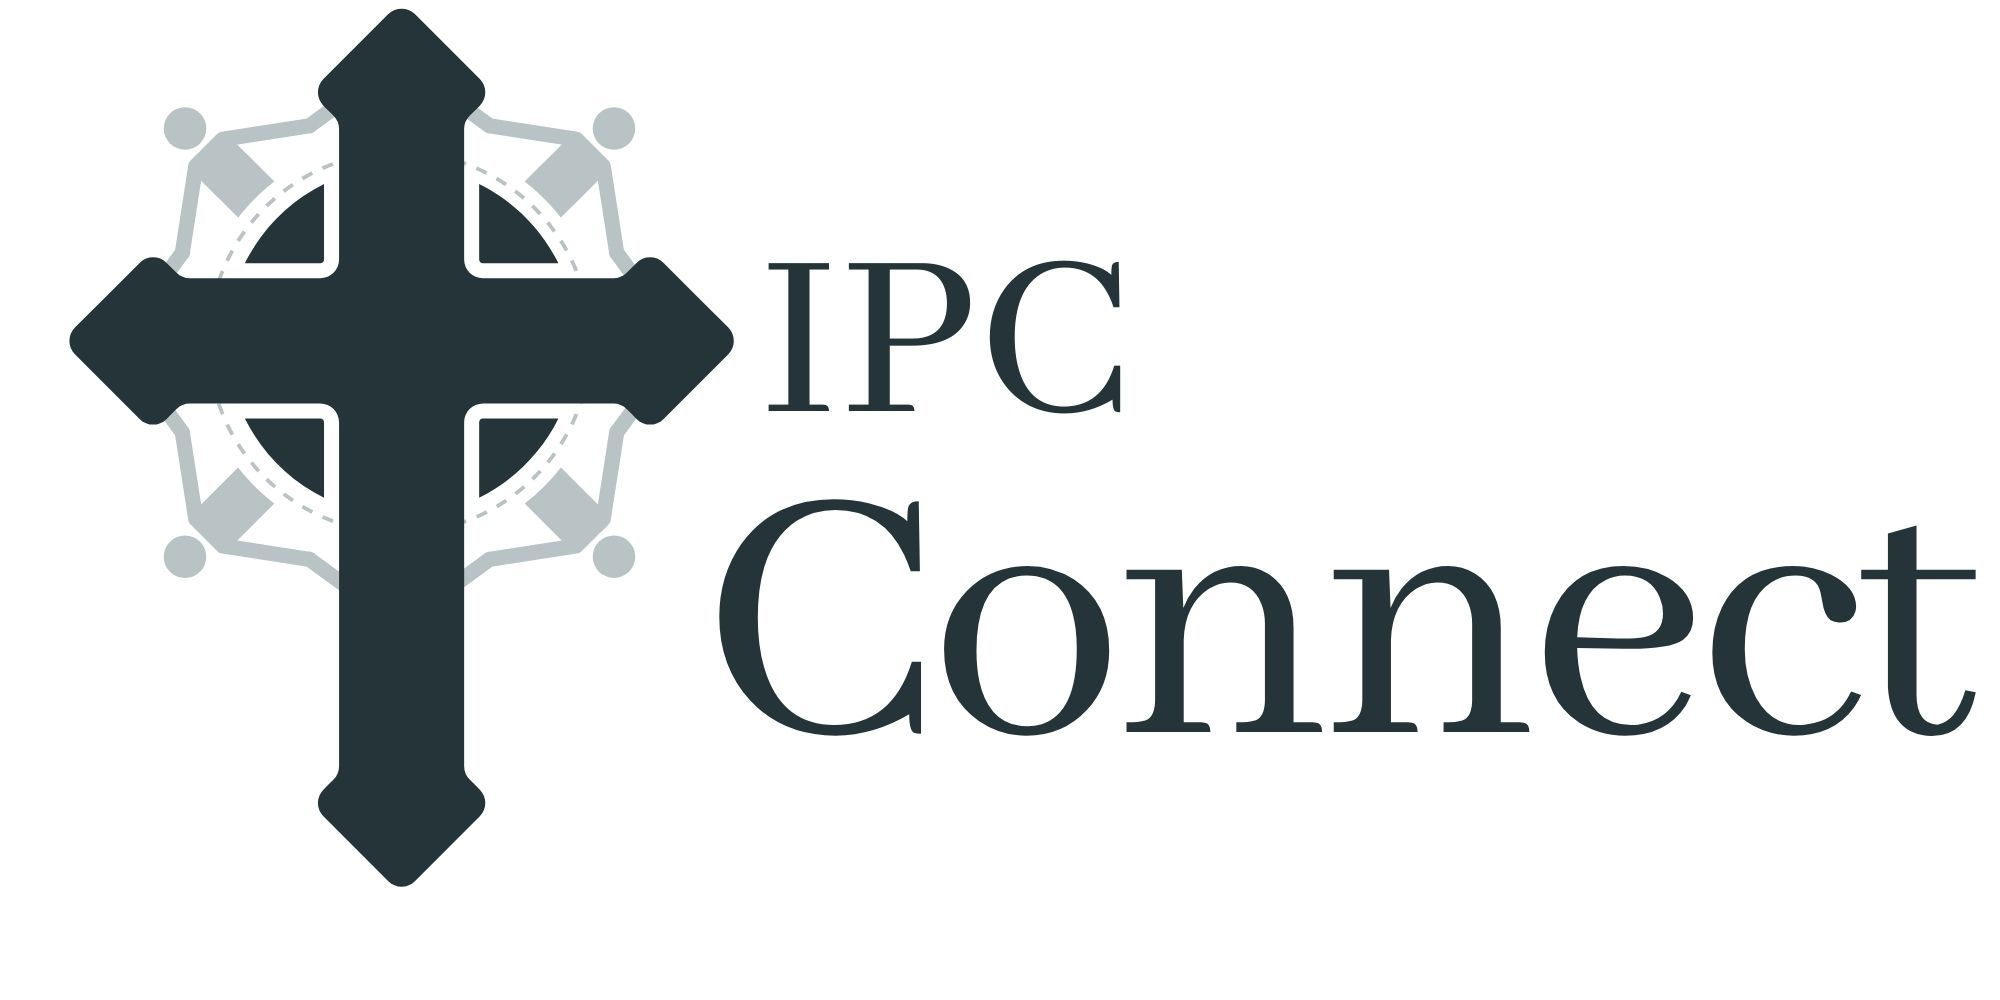 Introducing IPC Connect